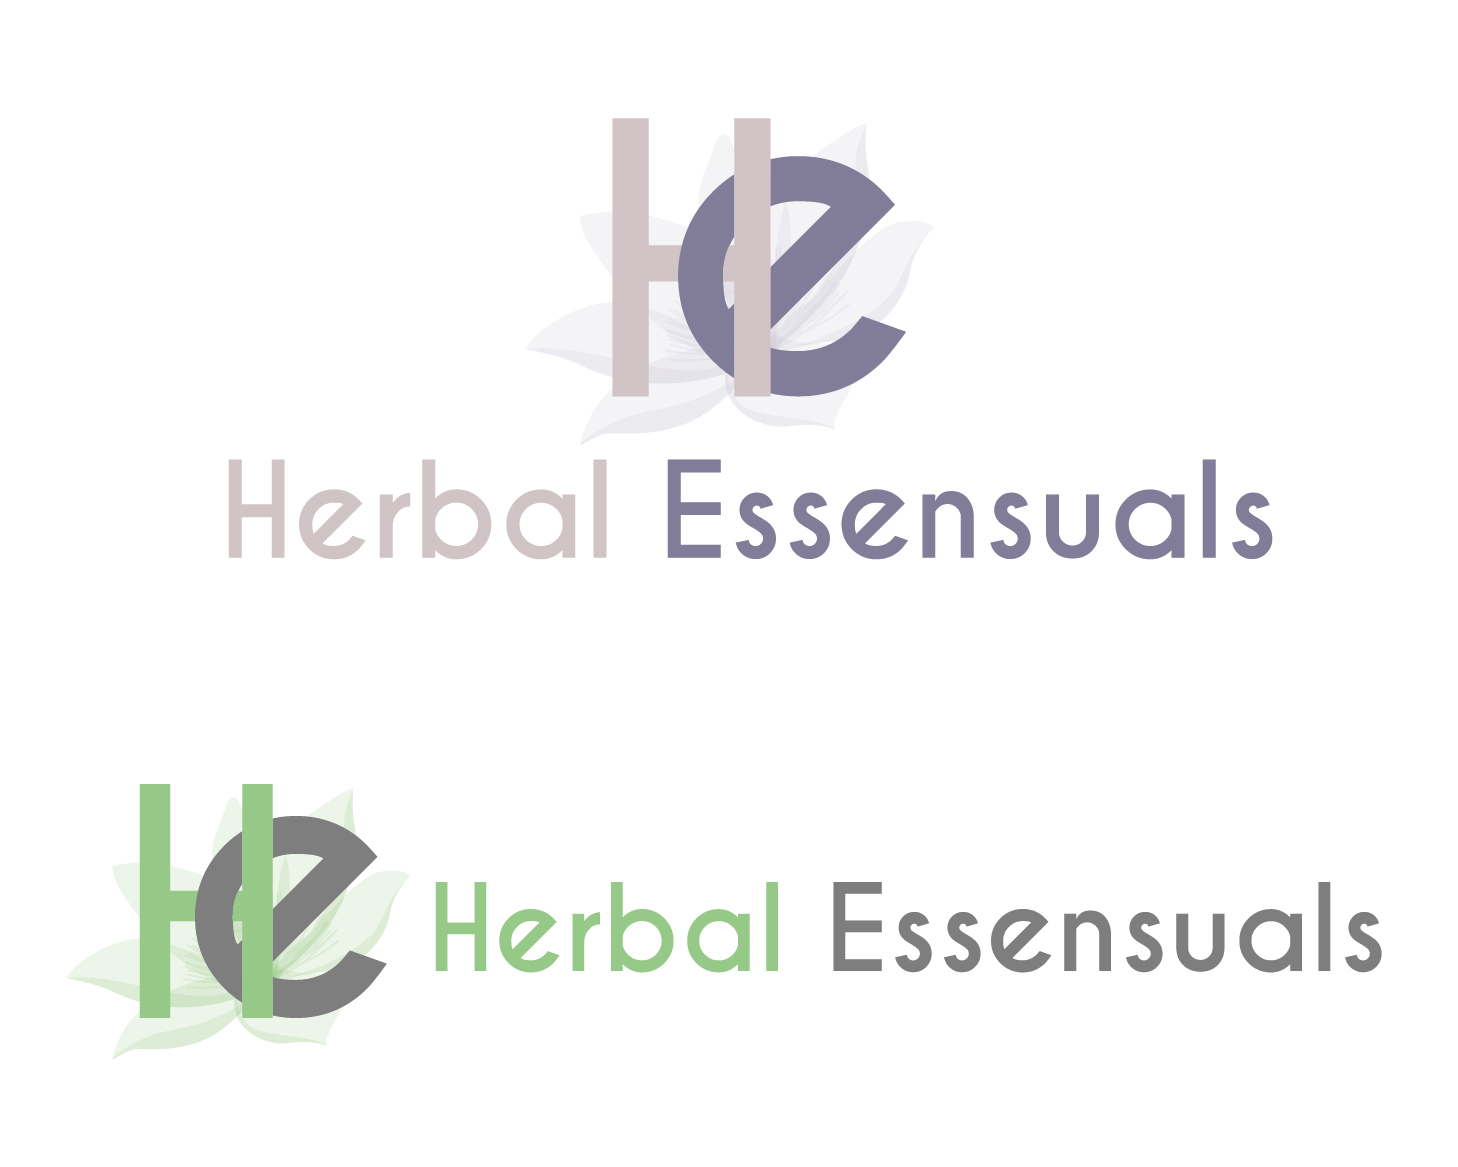 Logo Design by VENTSISLAV KOVACHEV - Entry No. 11 in the Logo Design Contest Captivating Logo Design for Herbal Essensuals.